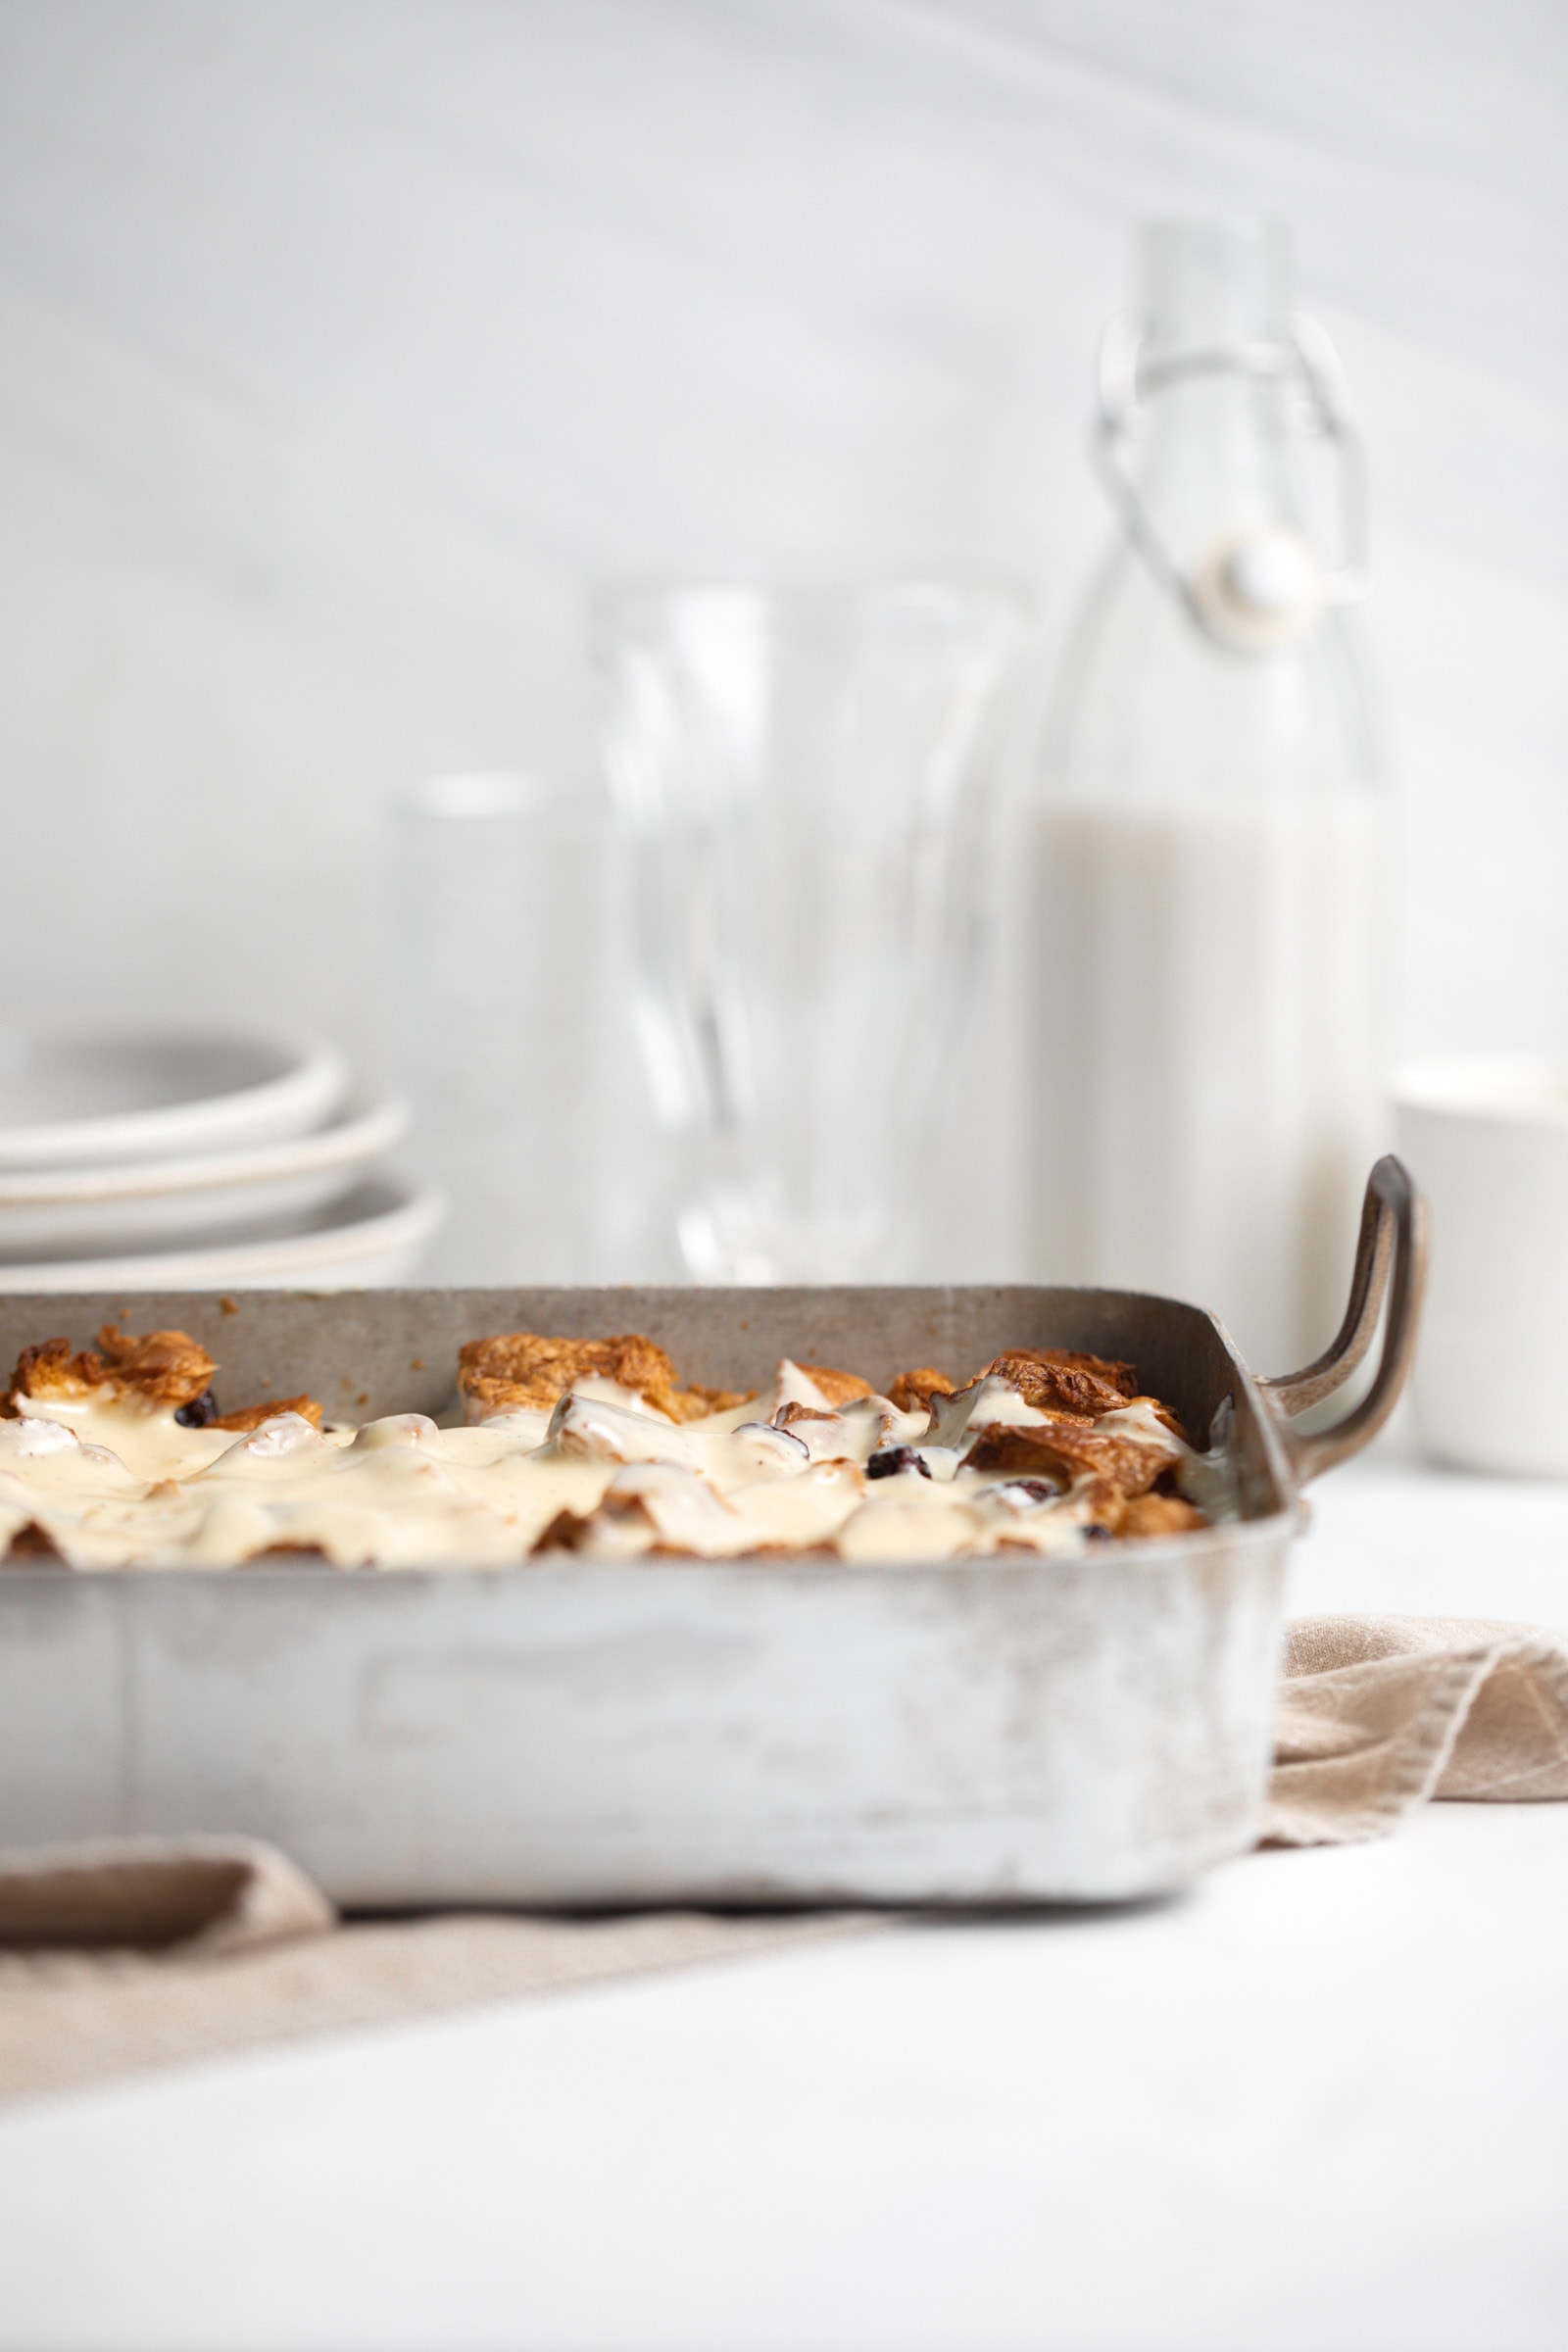 rum raisin bread pudding in a pan